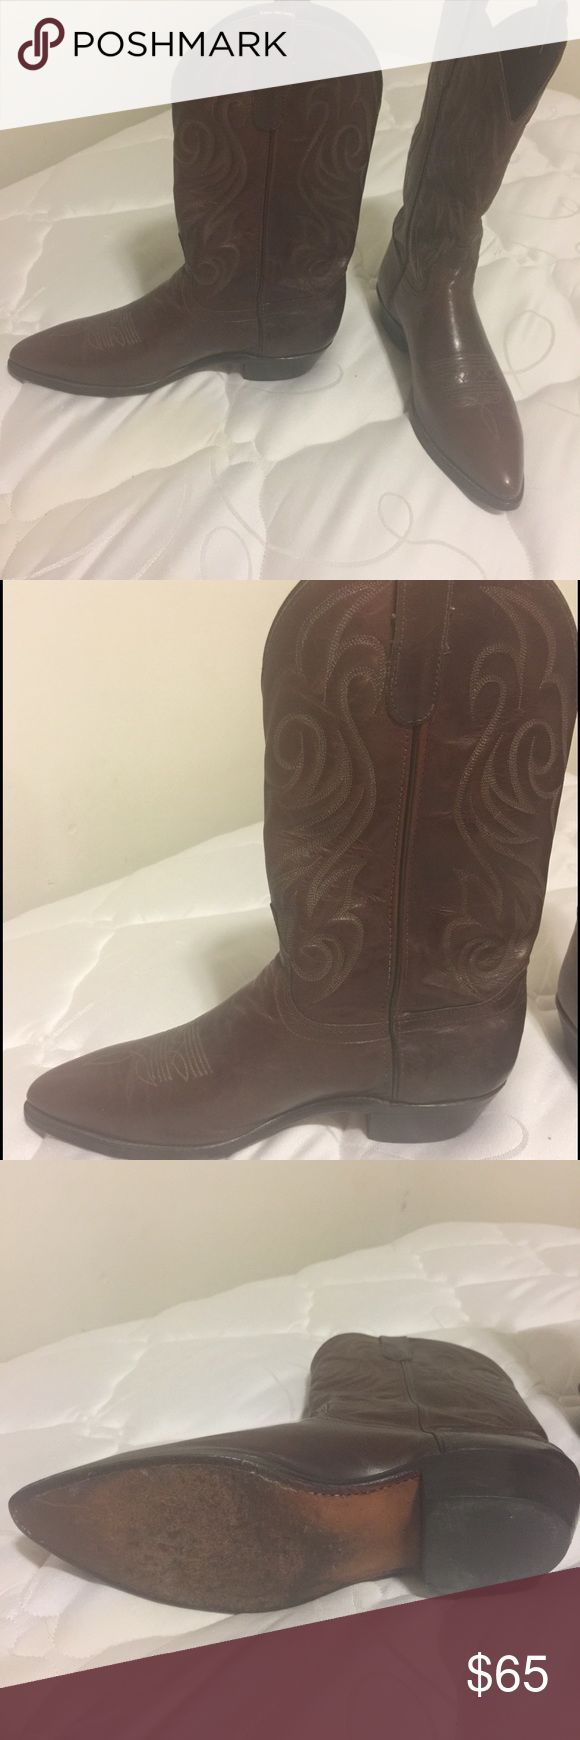 Code West men's cowboy boots👢 Lightly worn, in excellent condition, men's cowboy boots. 🤠 Code West Shoes Boots